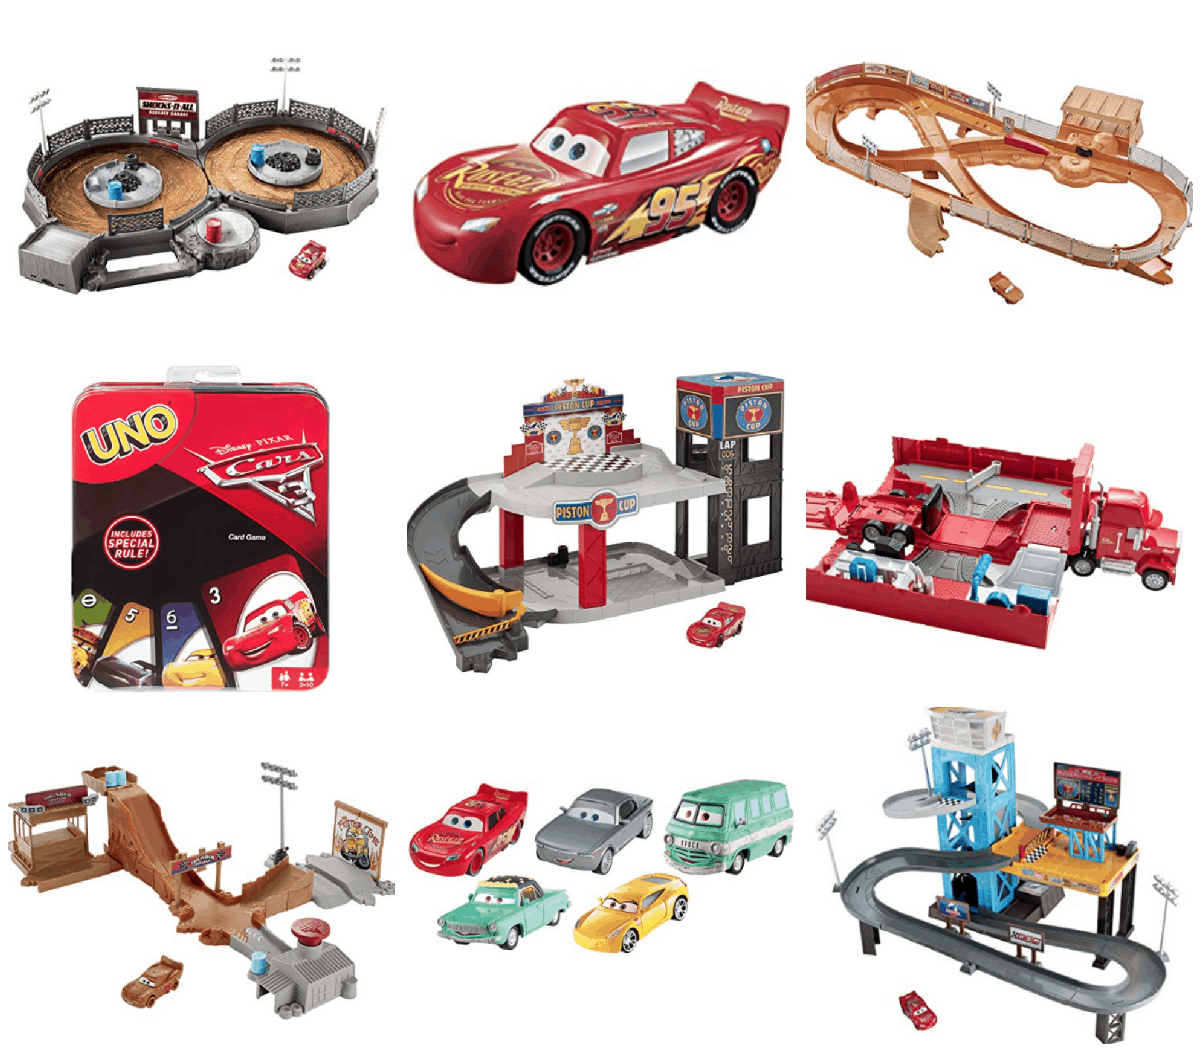 Up To 59 Off Select Disney Pixar Cars 3 Toys Today Only